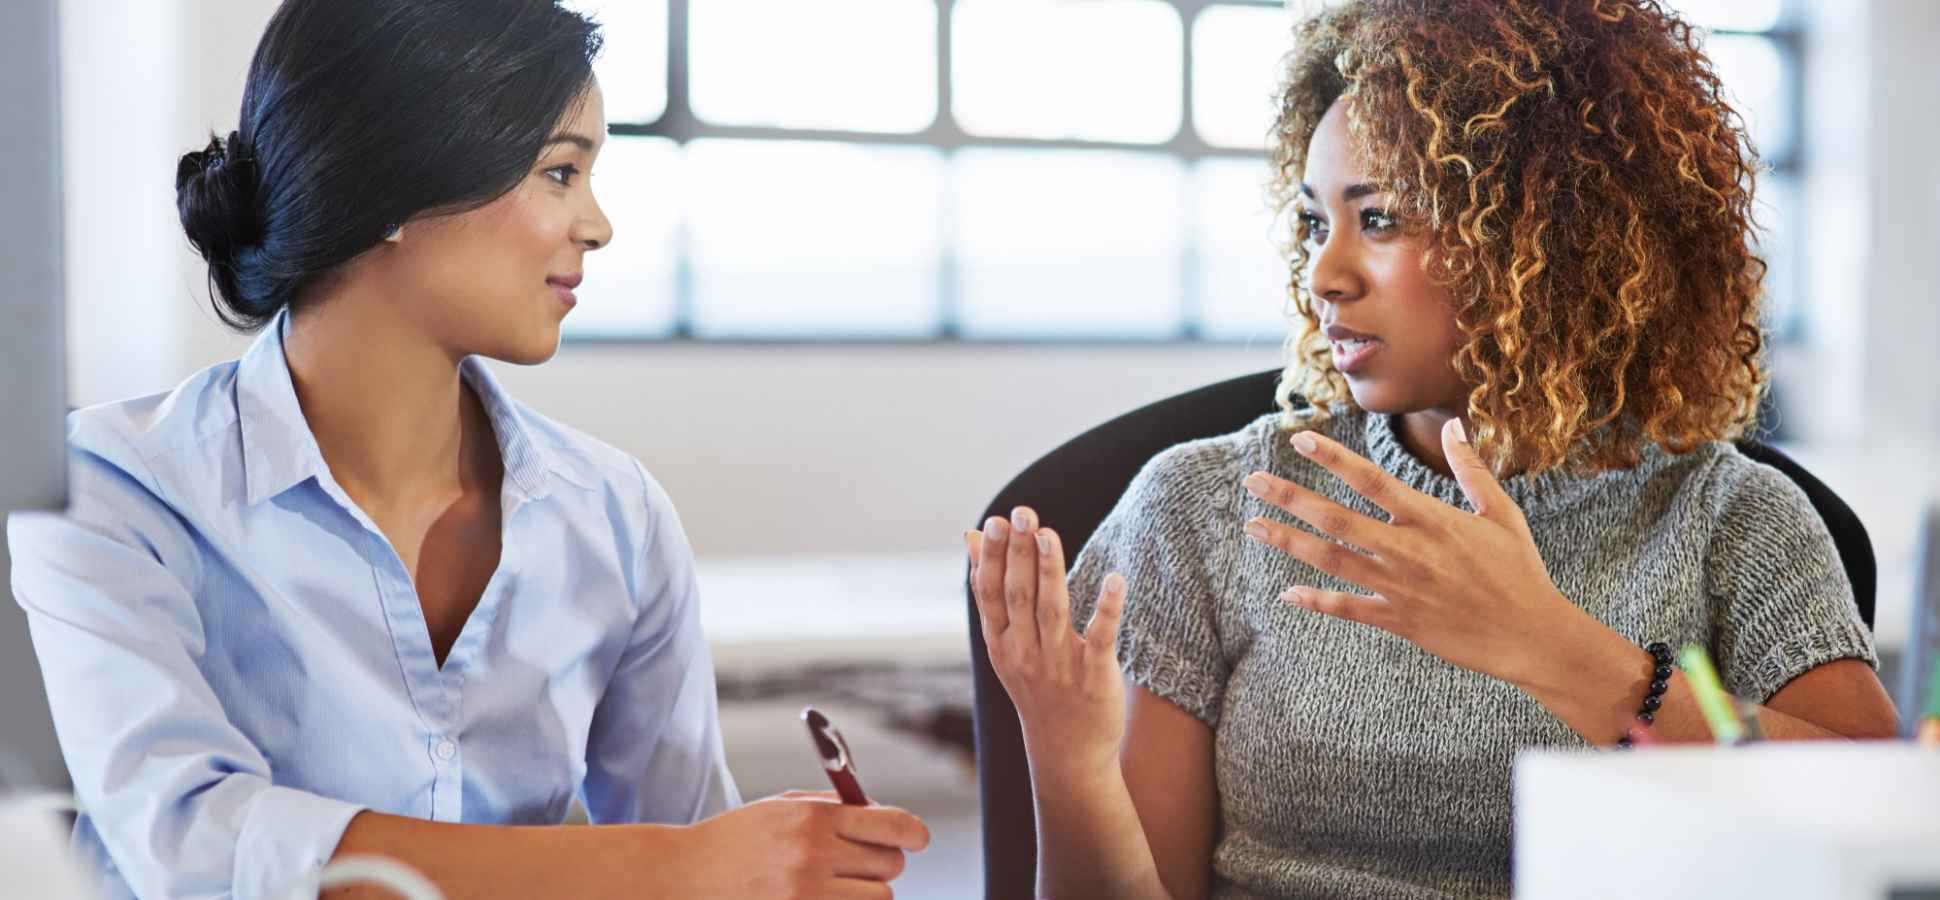 Improve Your Conversational Skills in 4 Easy Steps